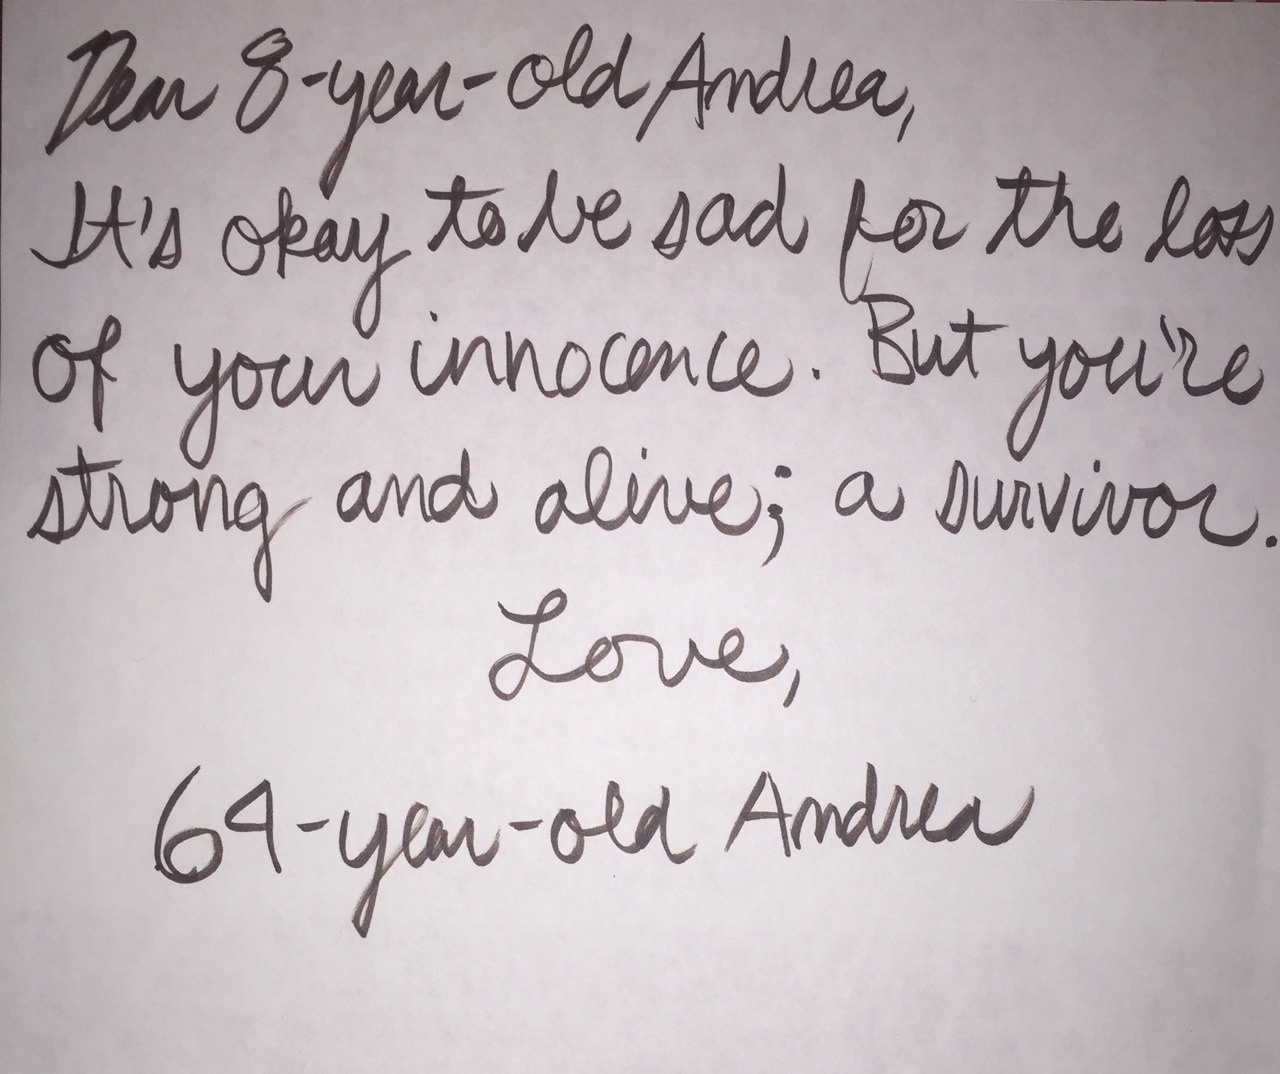 Dear 8-year-old Andrea,  It's okay to be sad for the loss of your innocence. But you're strong and alive; a survivor.  Love,  64-year-old Andrea